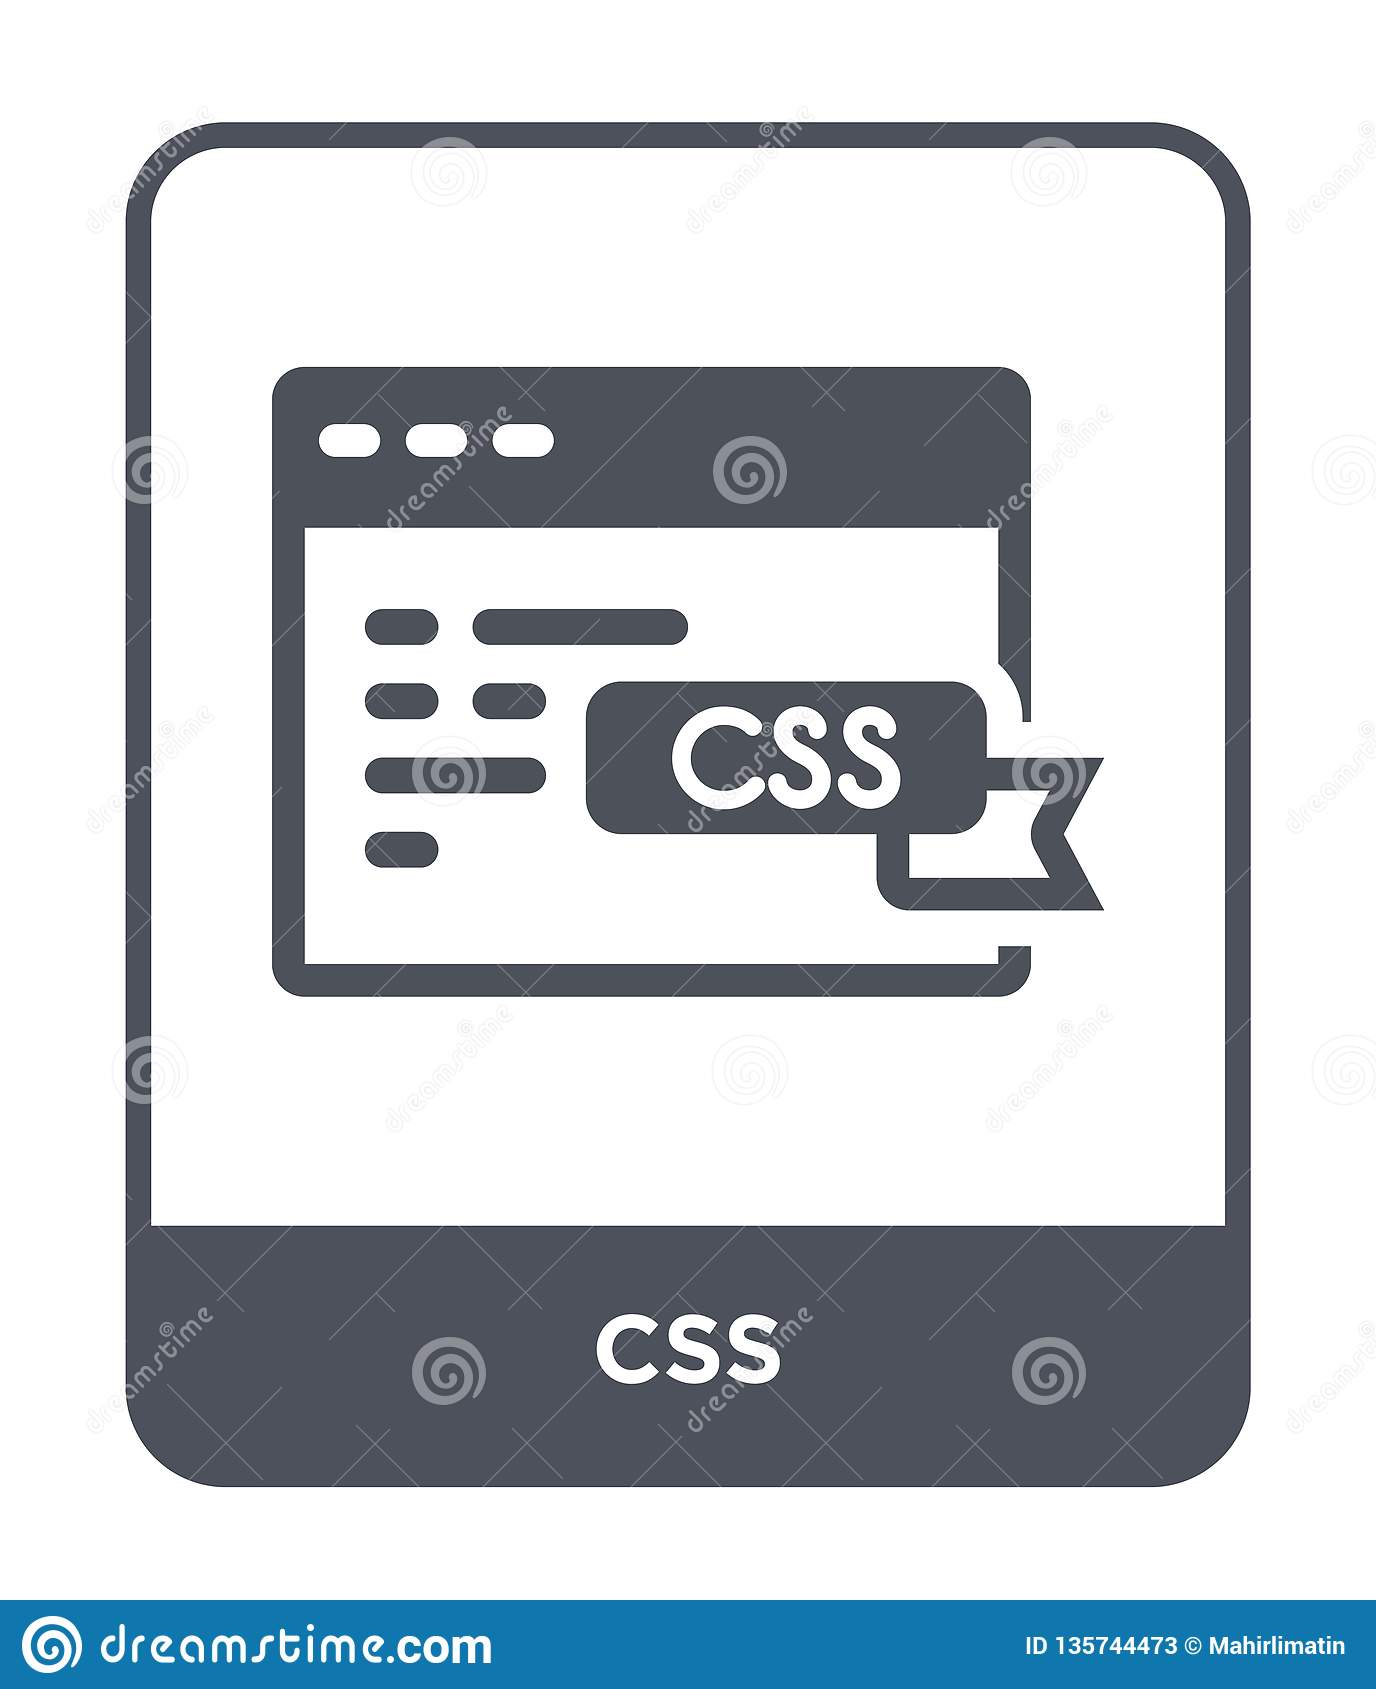 Css Icon In Trendy Design Style Css Icon Isolated On White Background Css Vector Icon Simple And Modern Flat Symbol For Web Site Stock Vector Illustration Of Technology Design 135744473